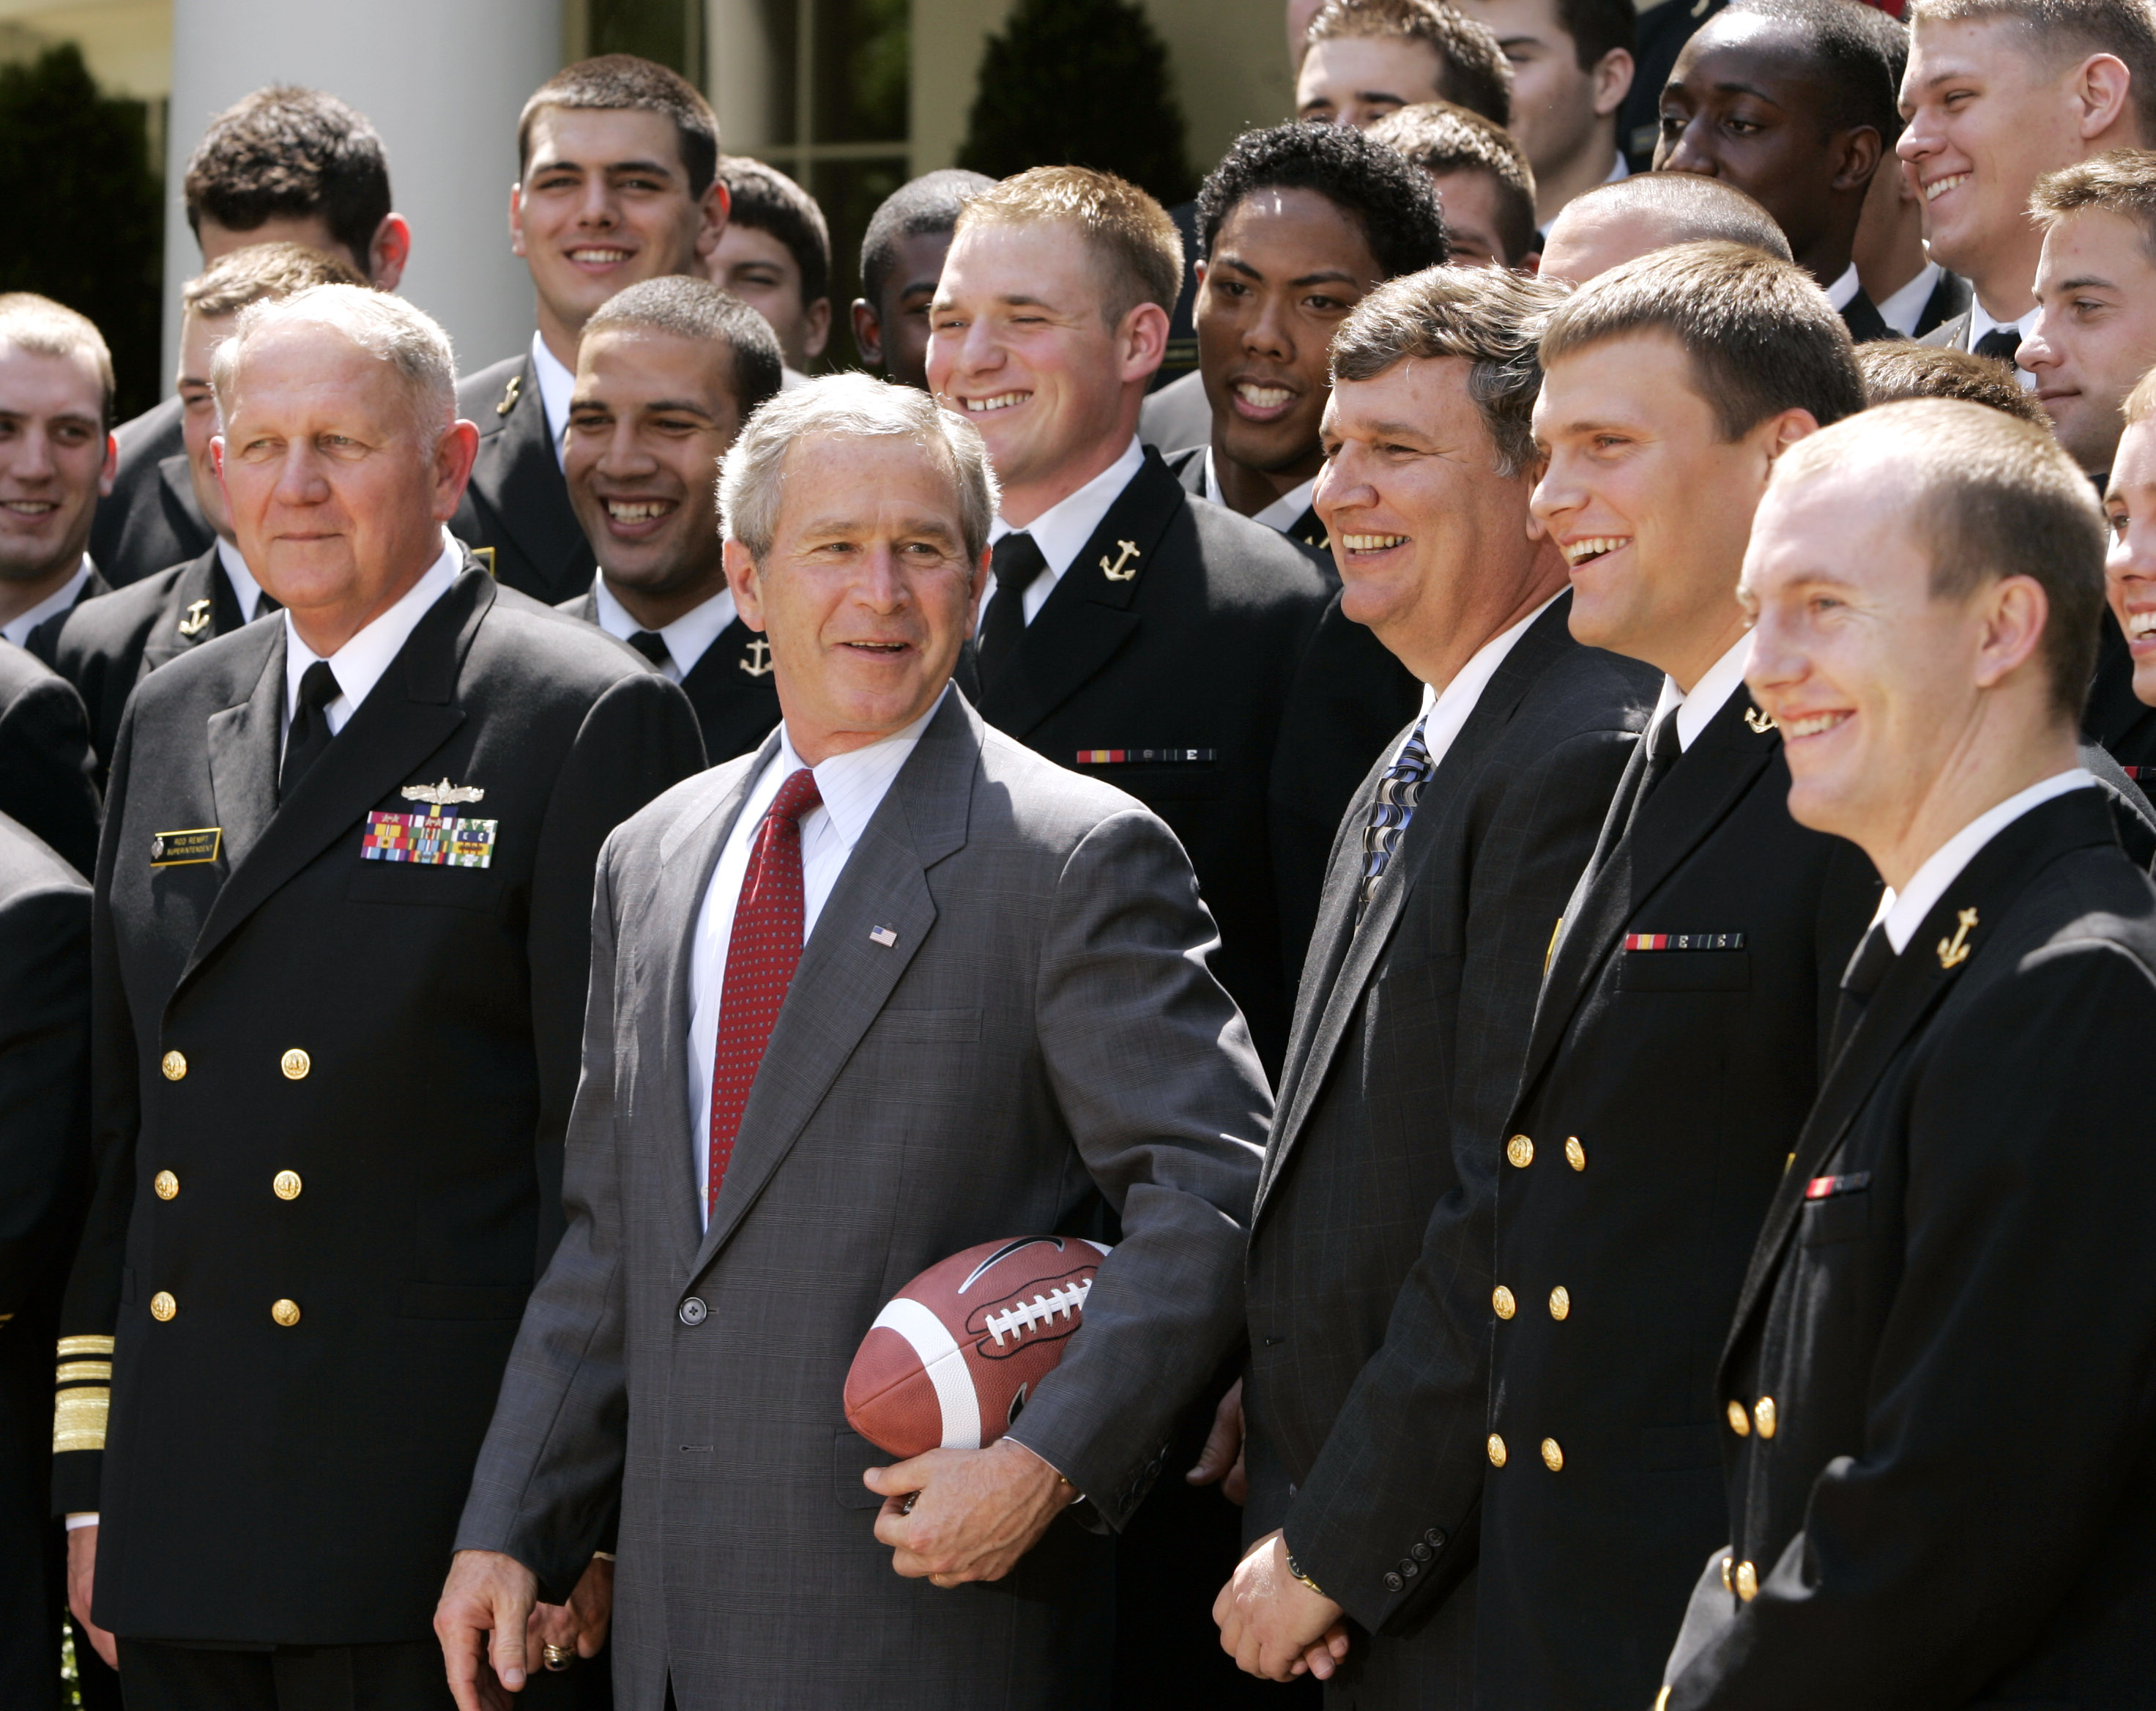 President Bush poses with members of the U.S. Naval Academy football team during a ceremony presenting the Commander in Chief trophy in the Rose Garden of the White House in Washington, Tuesday, April 25, 2006. Third from right is head coach Paul Johnson. (AP Photo/Gerald Herbert)